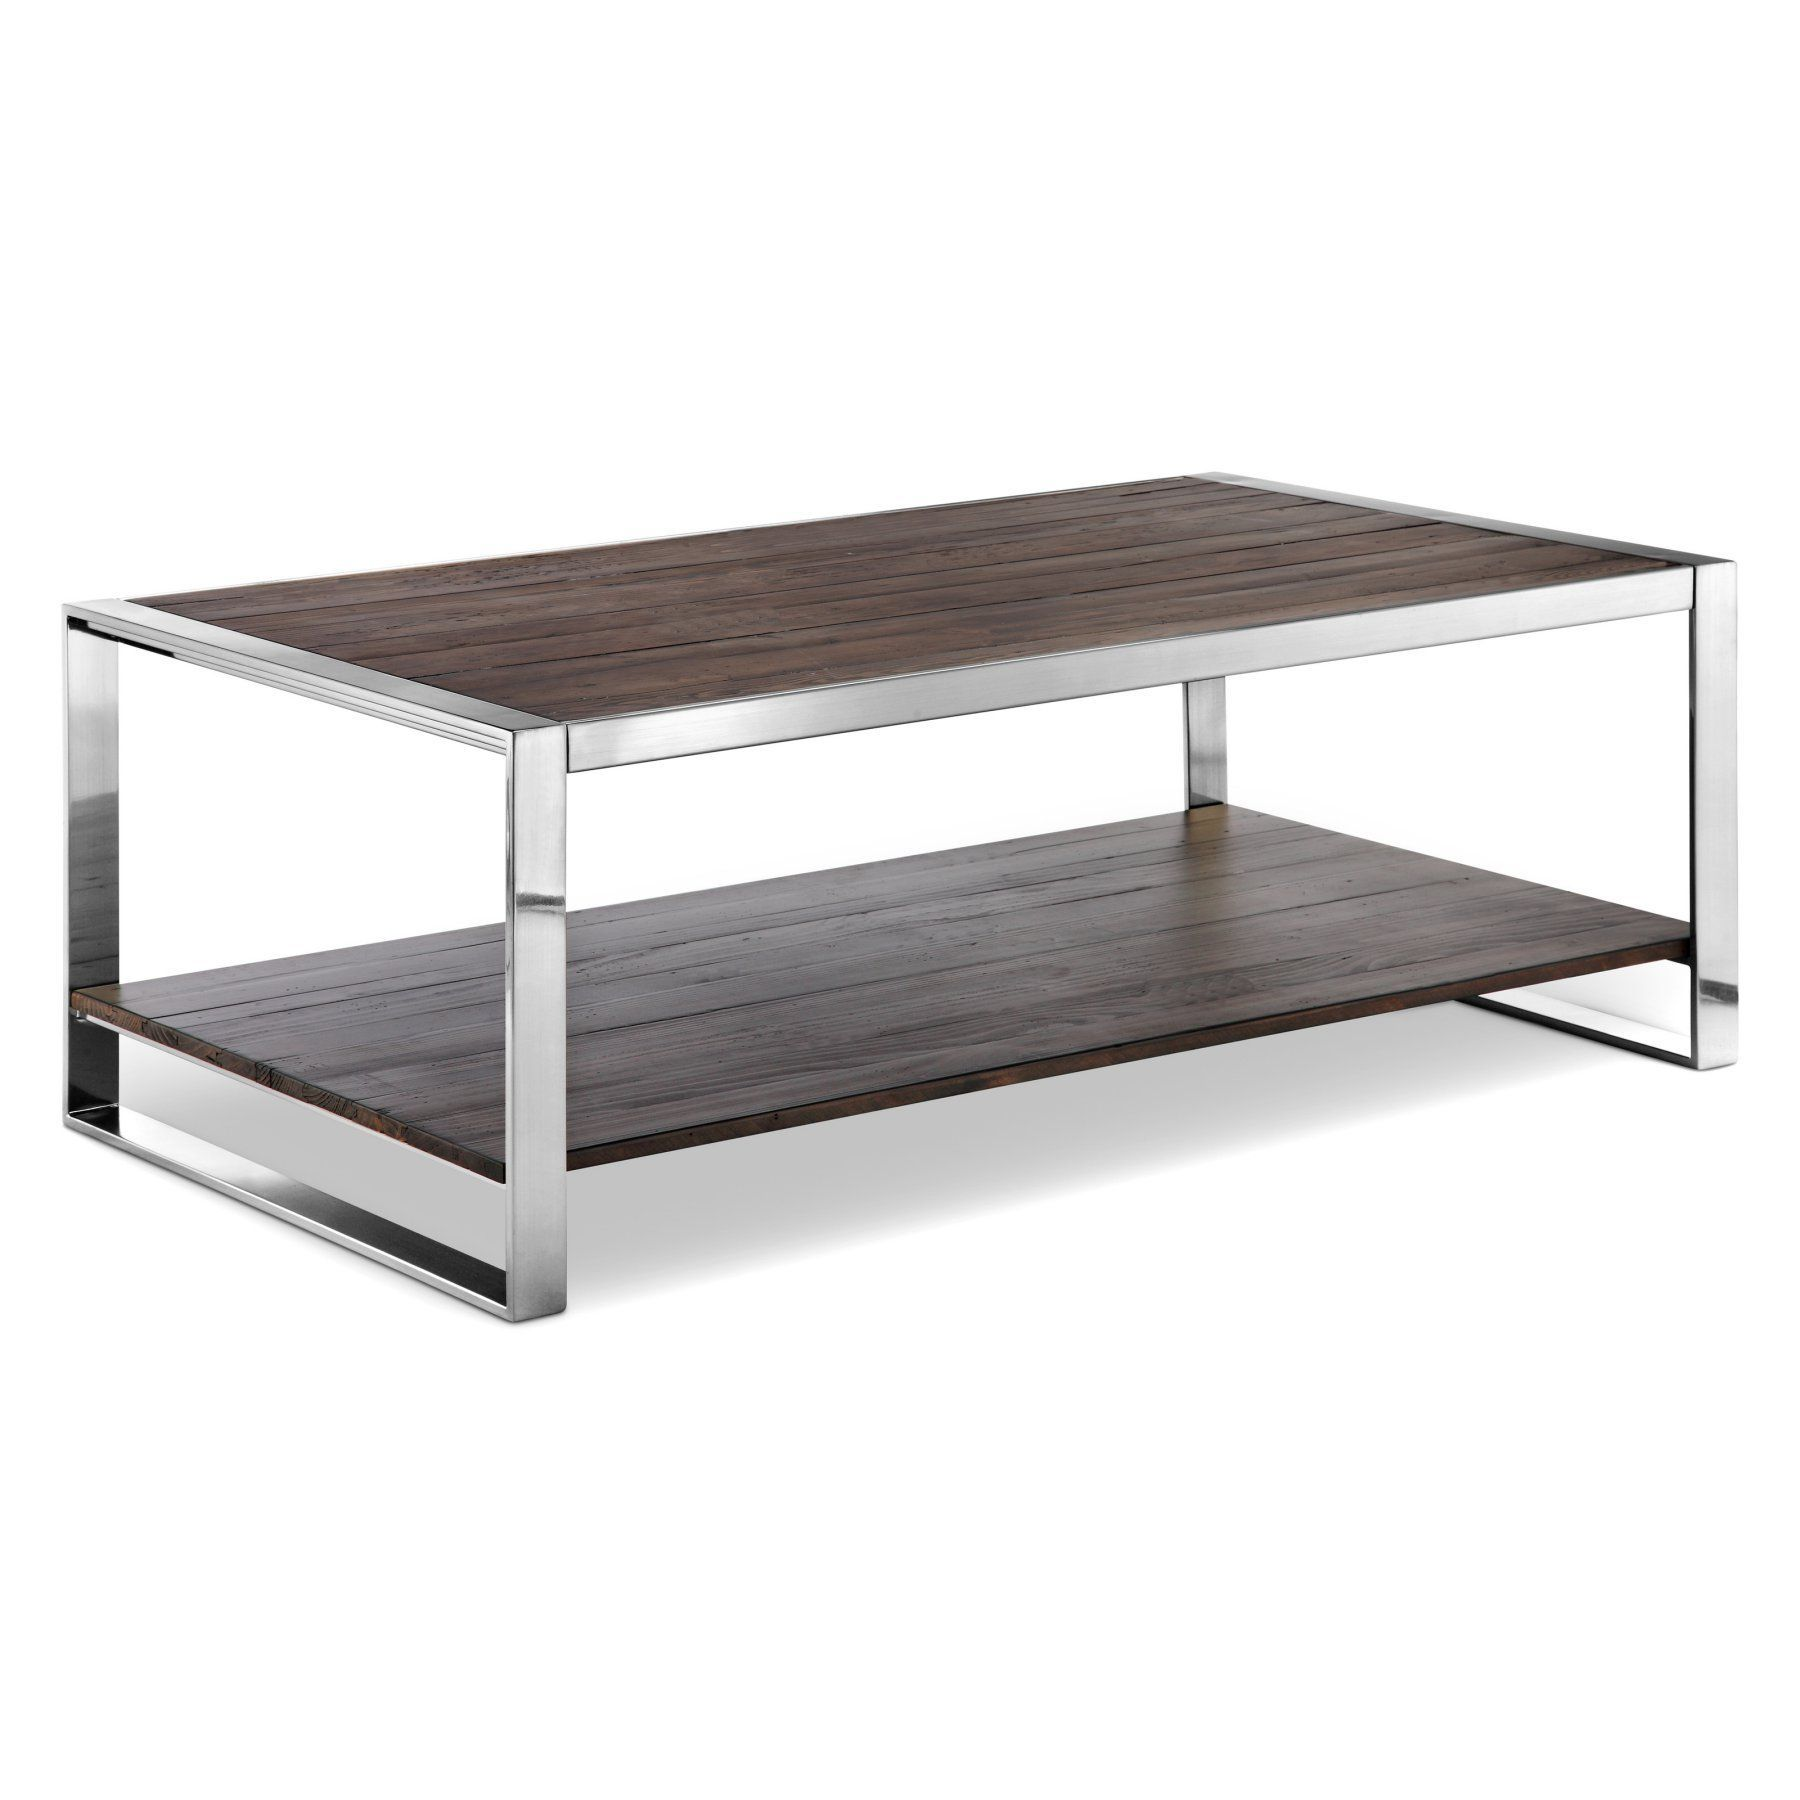 Magnussen Lawson Reclaimed Rectangular Coffee Table   T4339 43